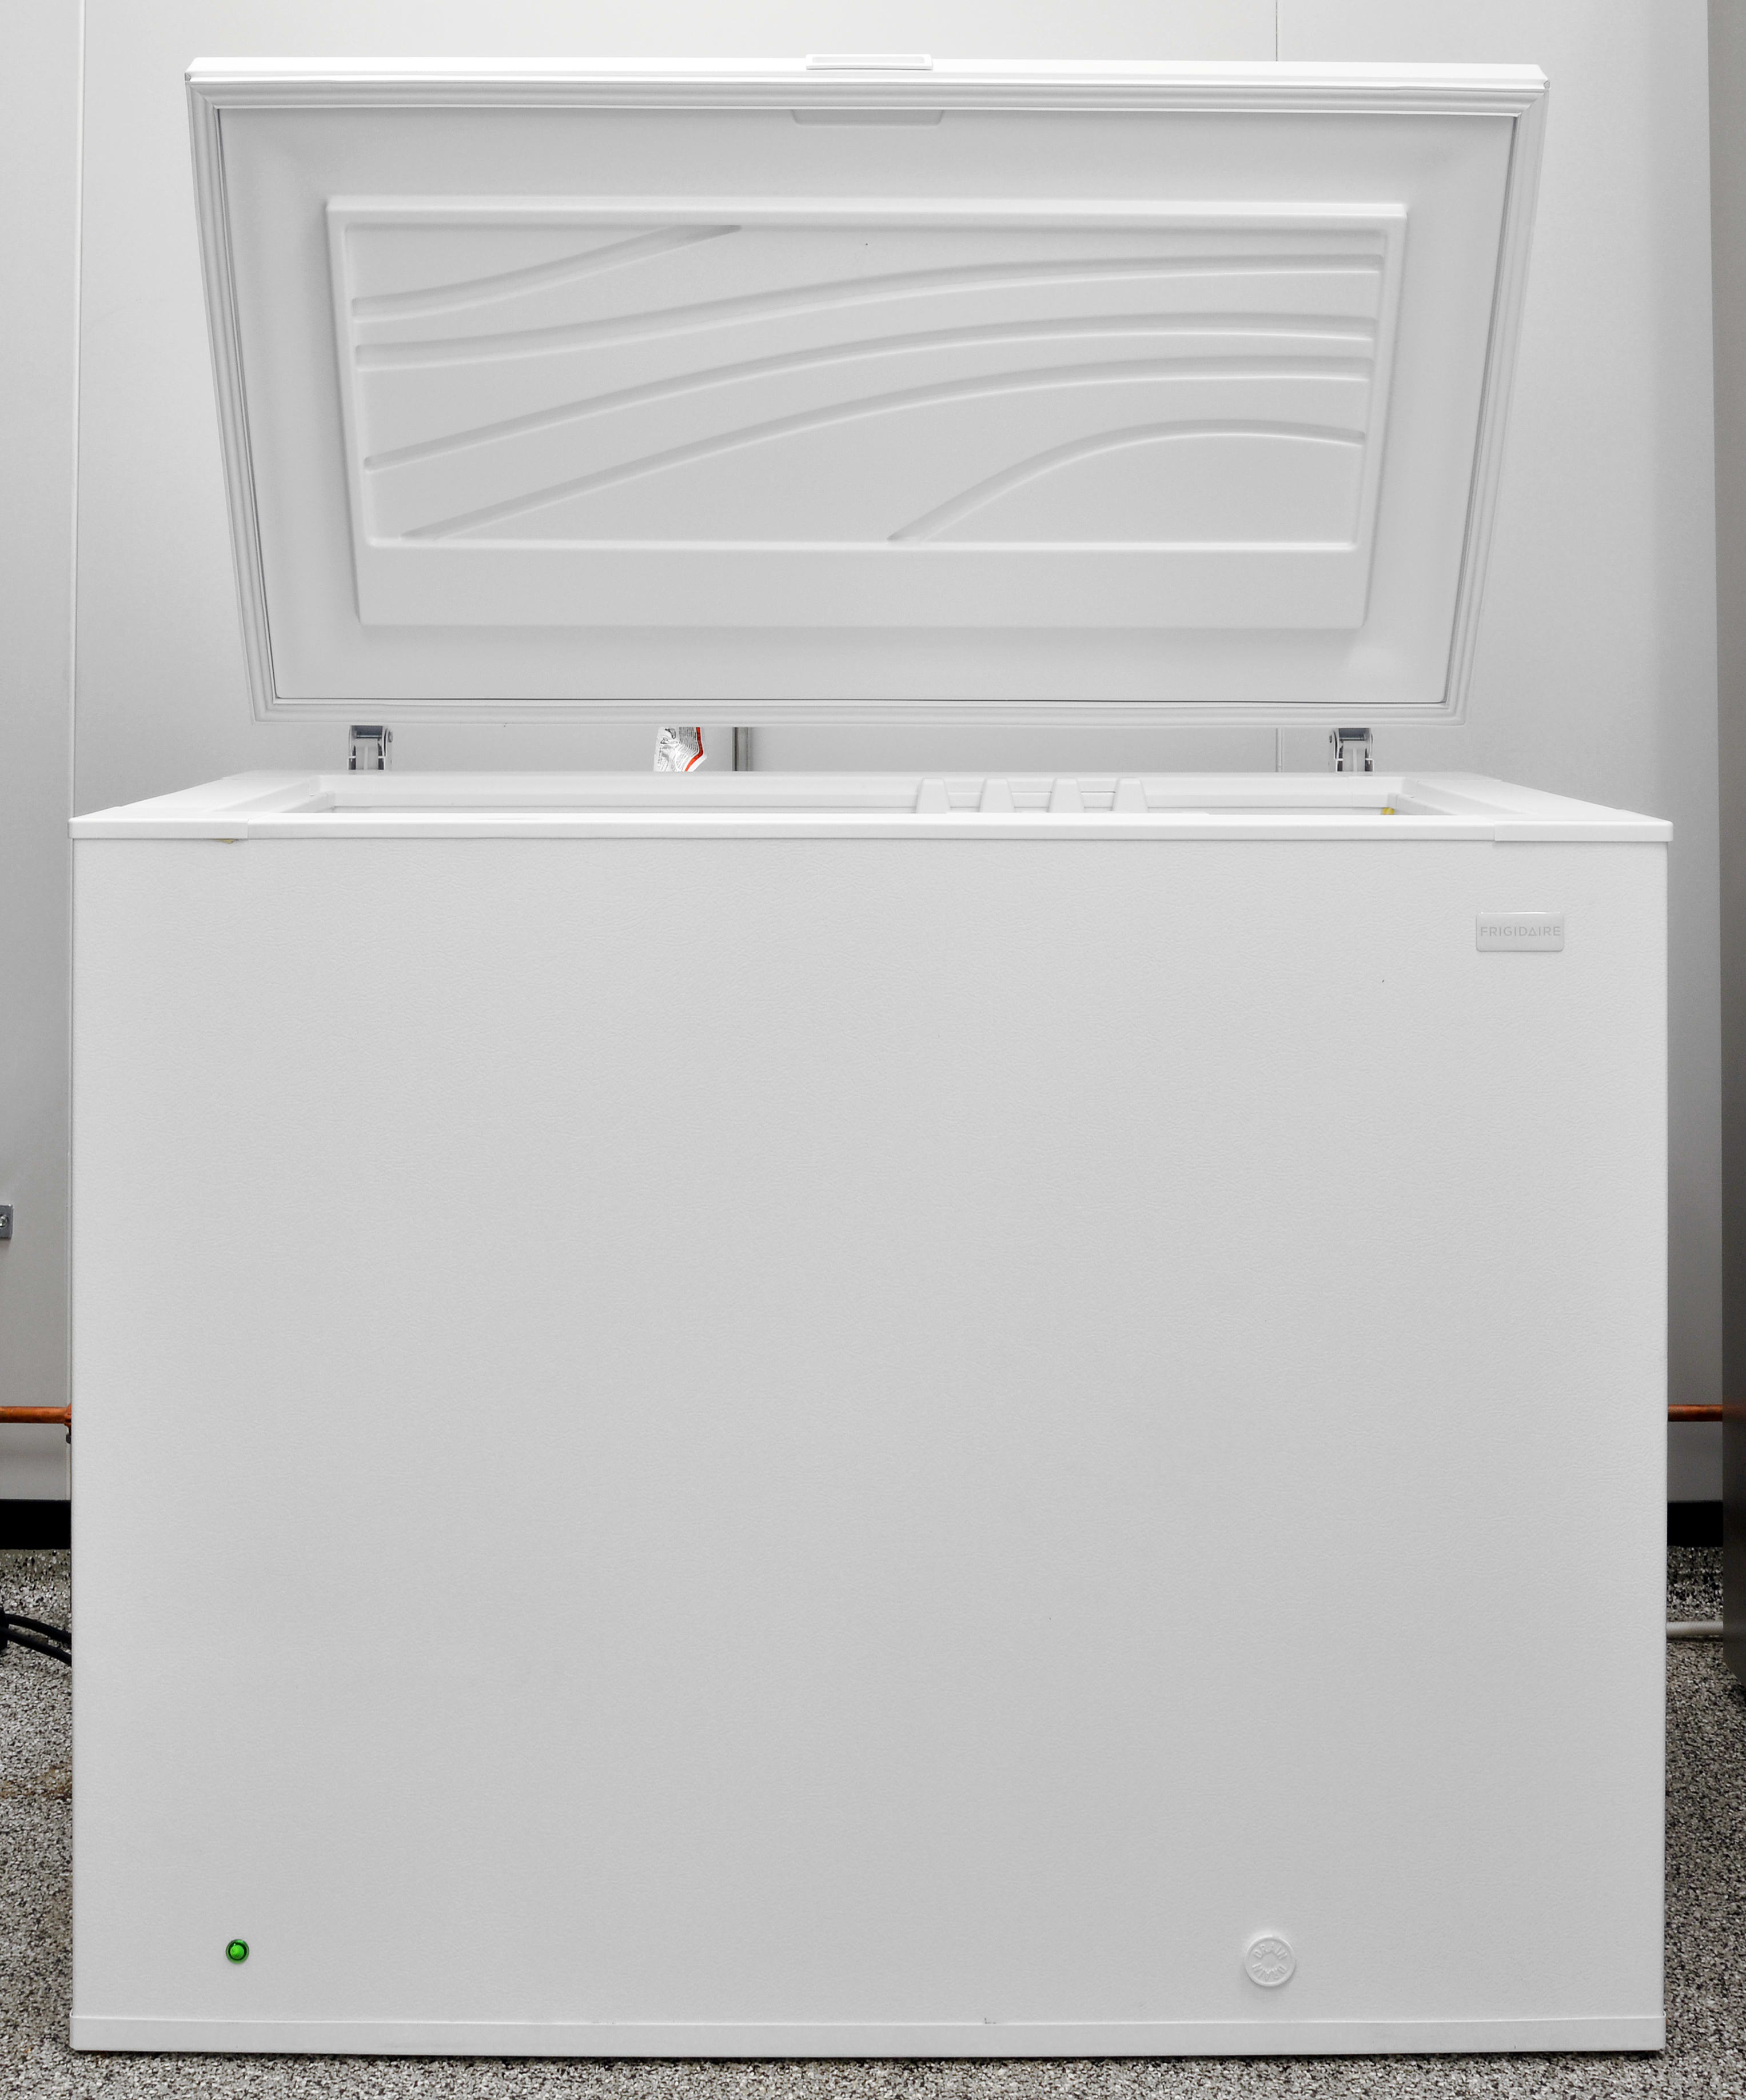 The wavy pattern on the door interior is the most visually unusual thing about the Frigidaire FFFC09M1QW.